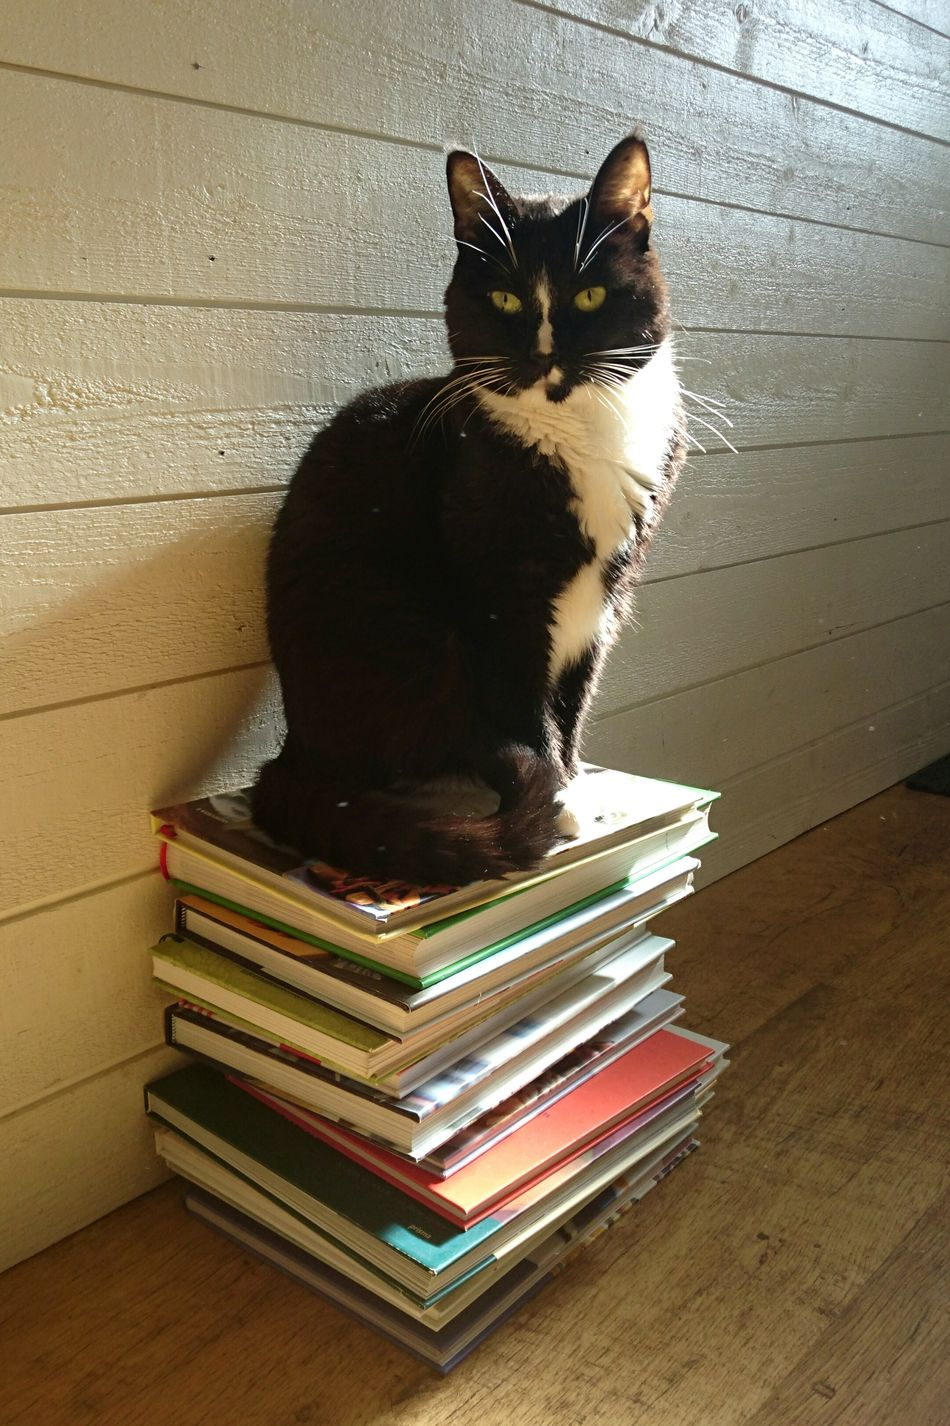 Cat Cat Lovers Pet Enjoying Life Enjoying The Sun Tranquility Peace And Quiet Black Cat Book Books Clean Shot One Cat